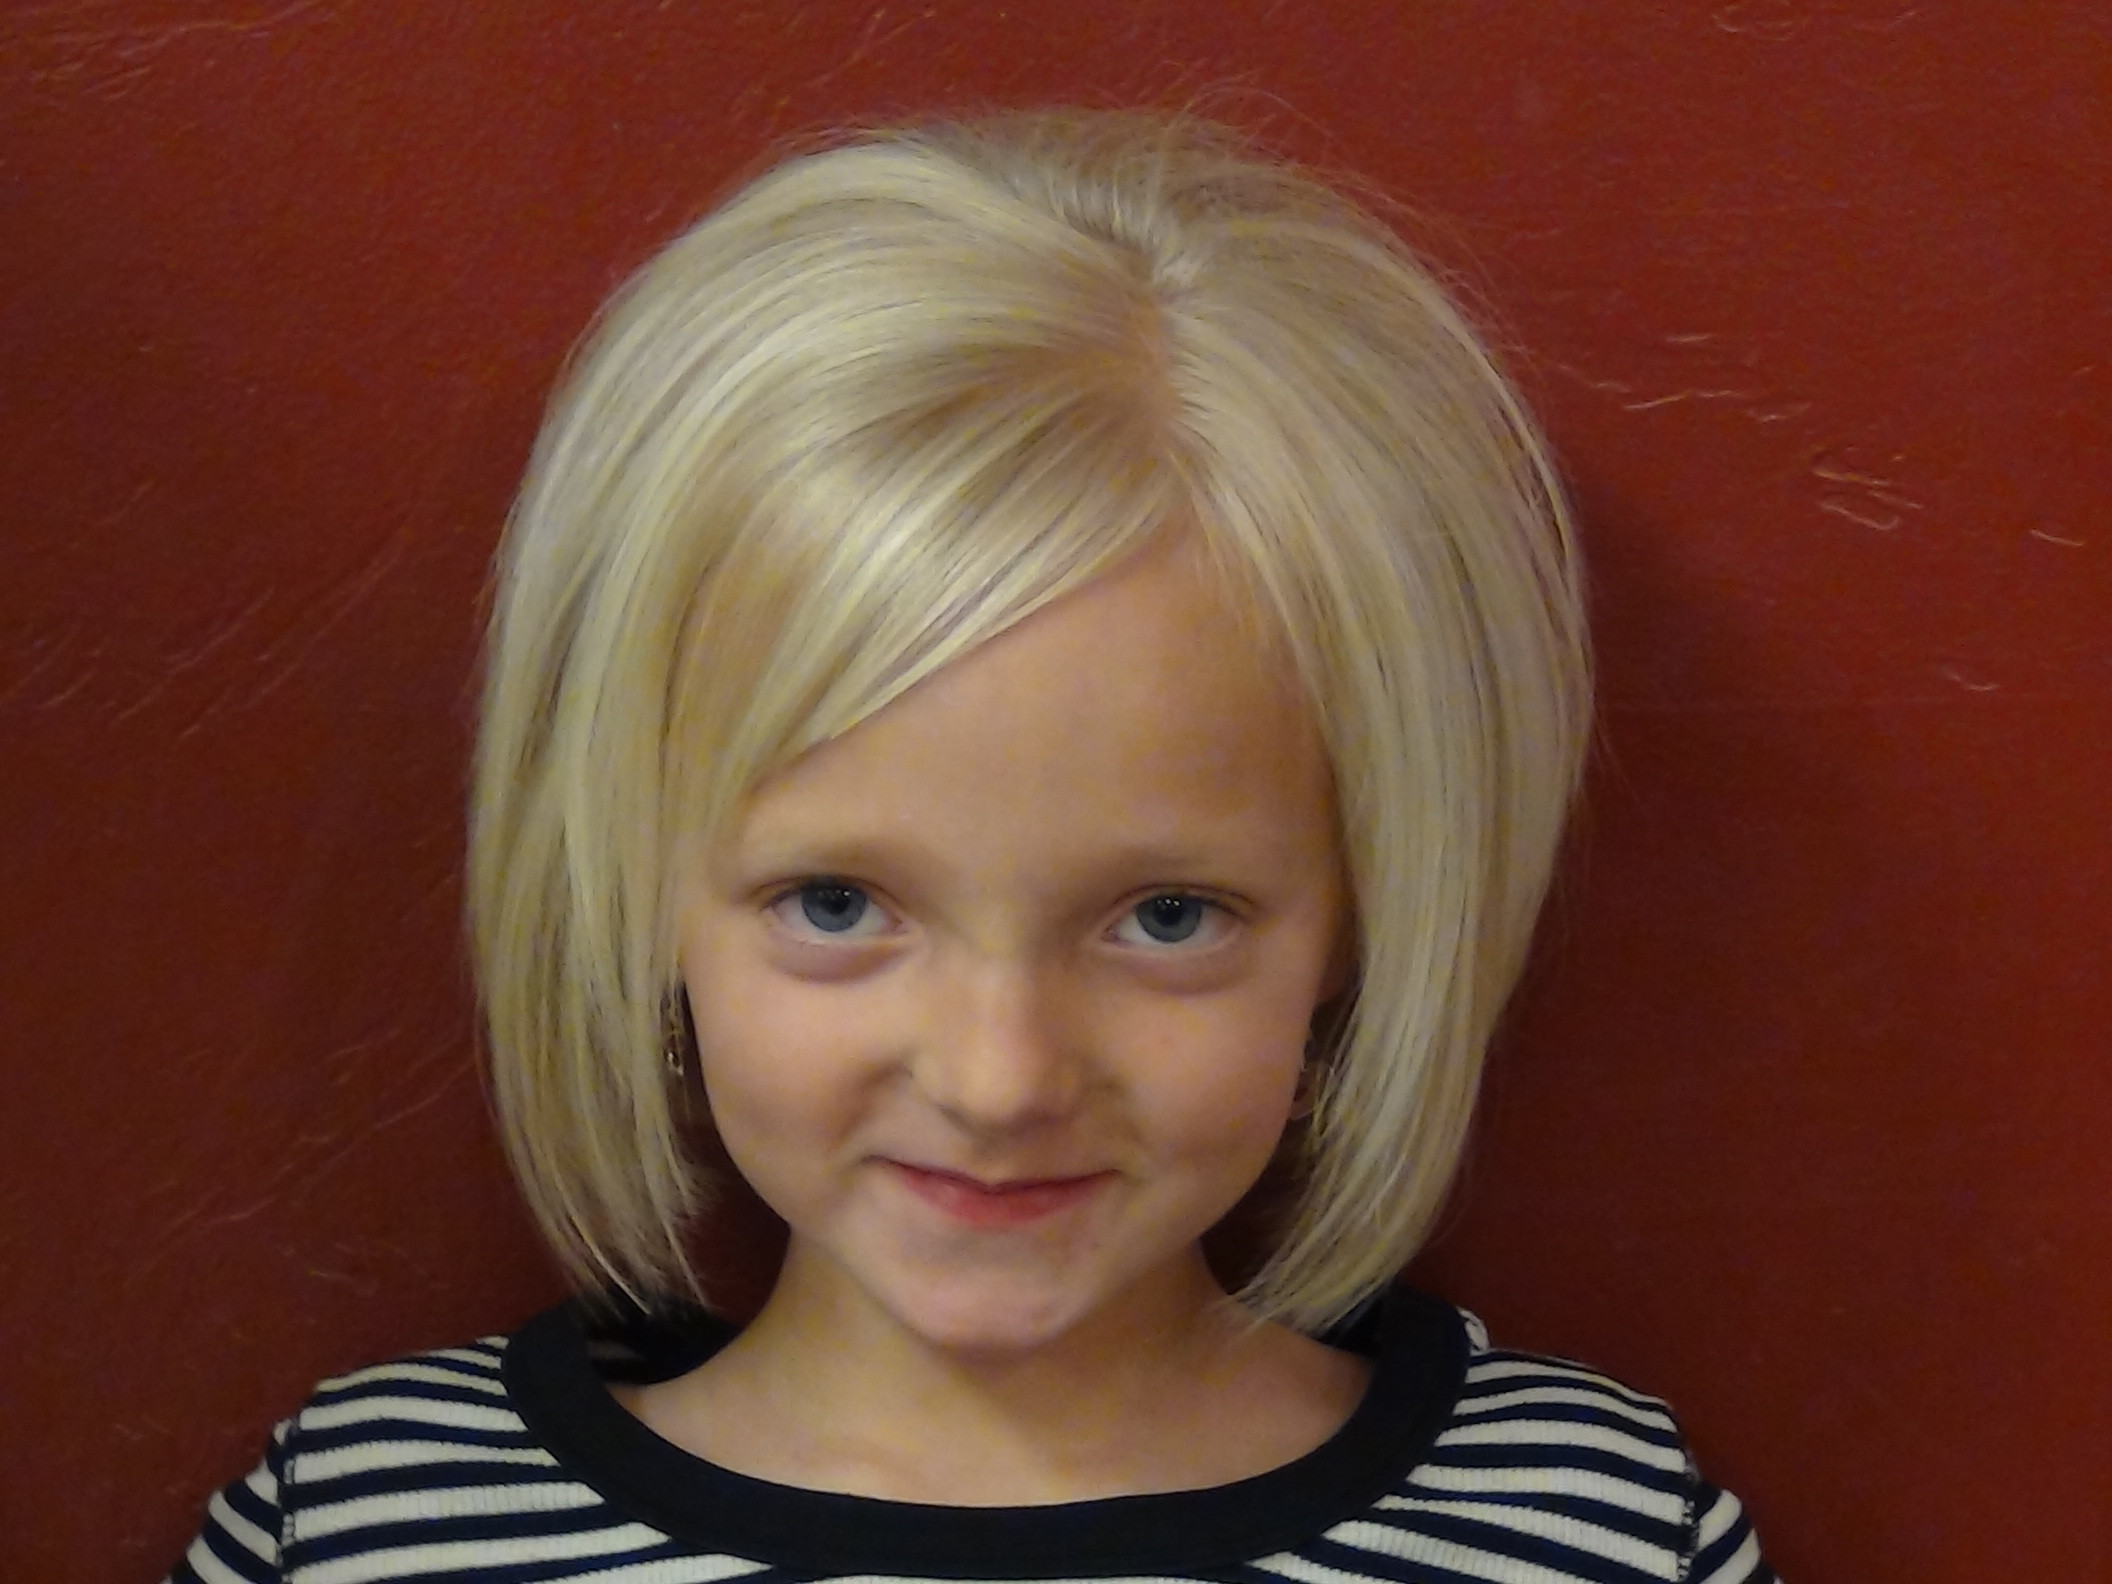 Best ideas about Little Girl Hairstyles . Save or Pin Cut Short Style into Little Girls Hair and Style Now.